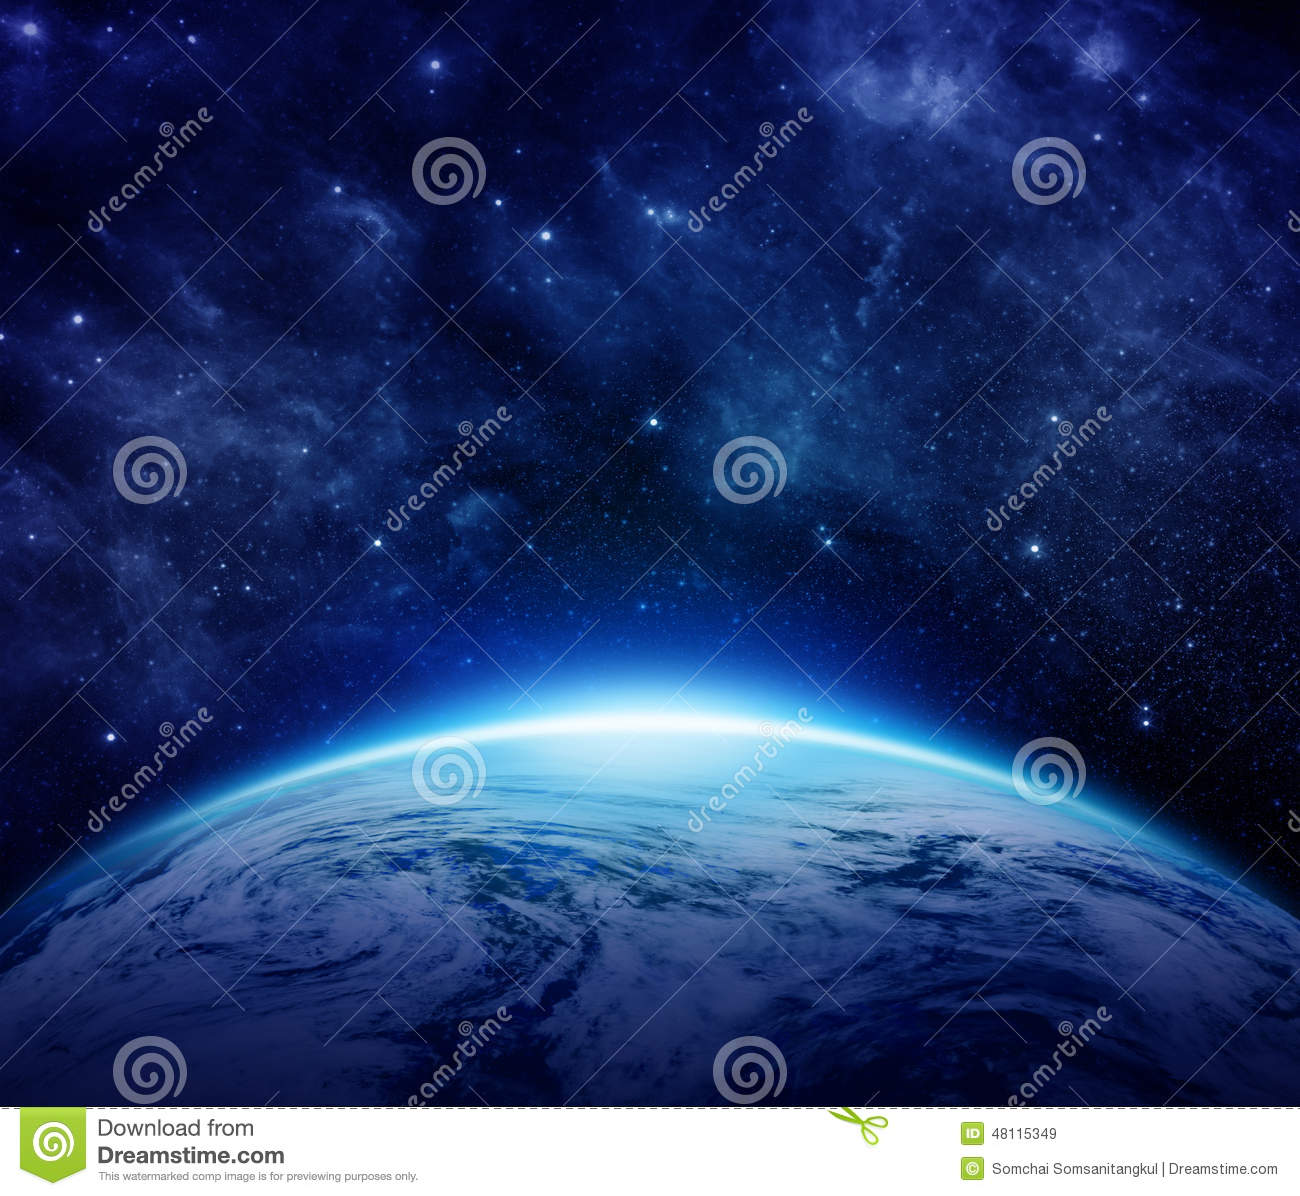 Blue Planet Earth, sun, stars, galaxies, nebulae, milky way in space can use for background